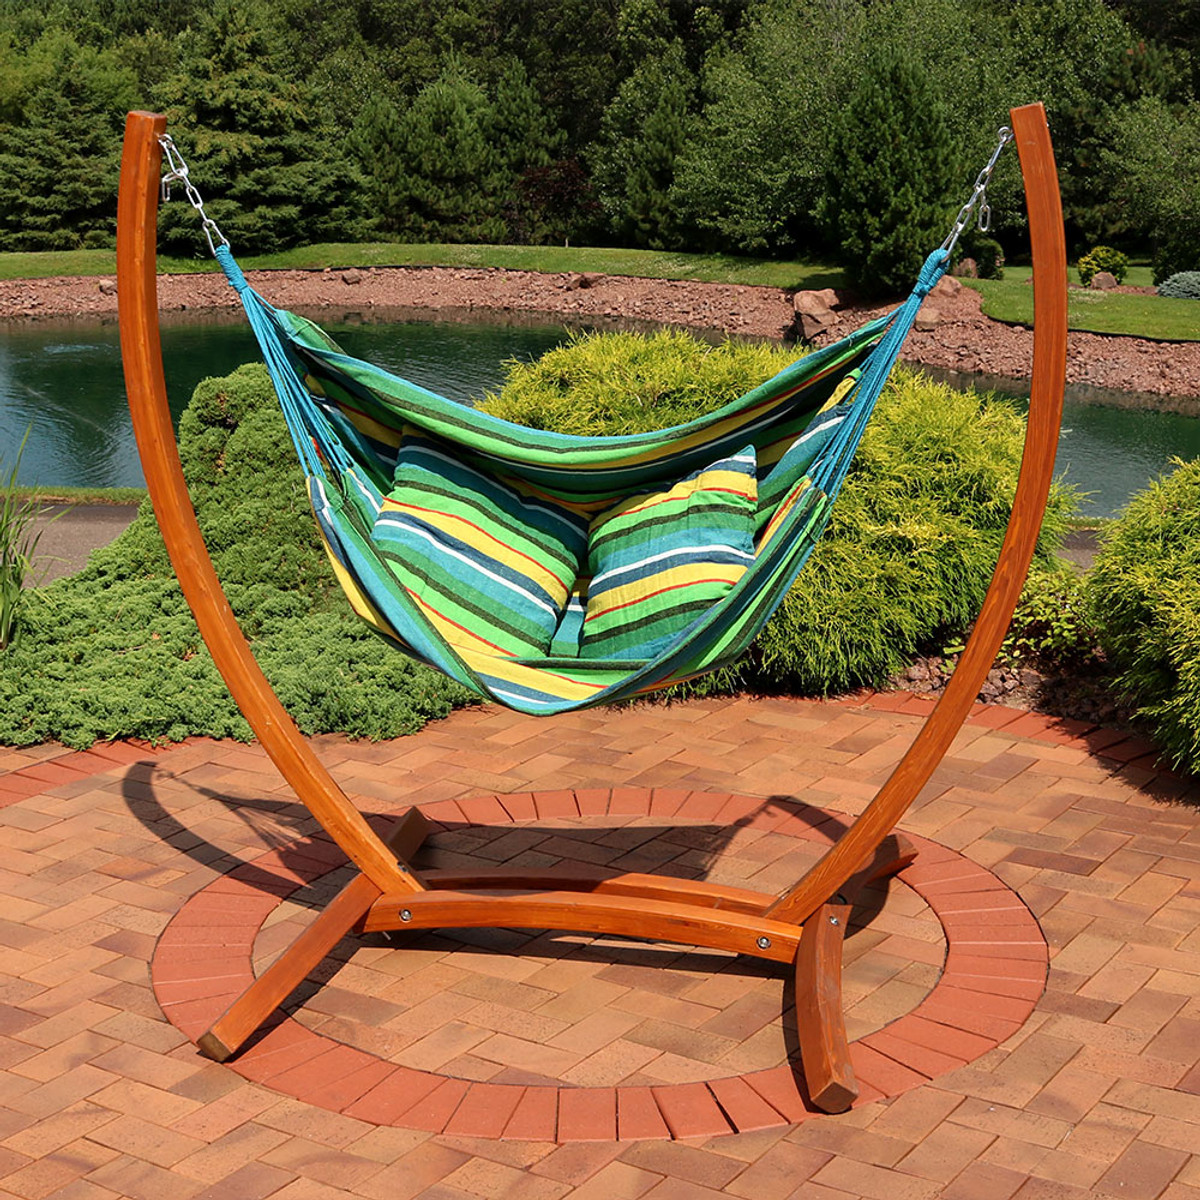 Sunnydaze Hanging Hammock Chair Swing With Sturdy Space Saving Wooden Stand  For Indoor Or Outdoor Use, Ocean Breeze